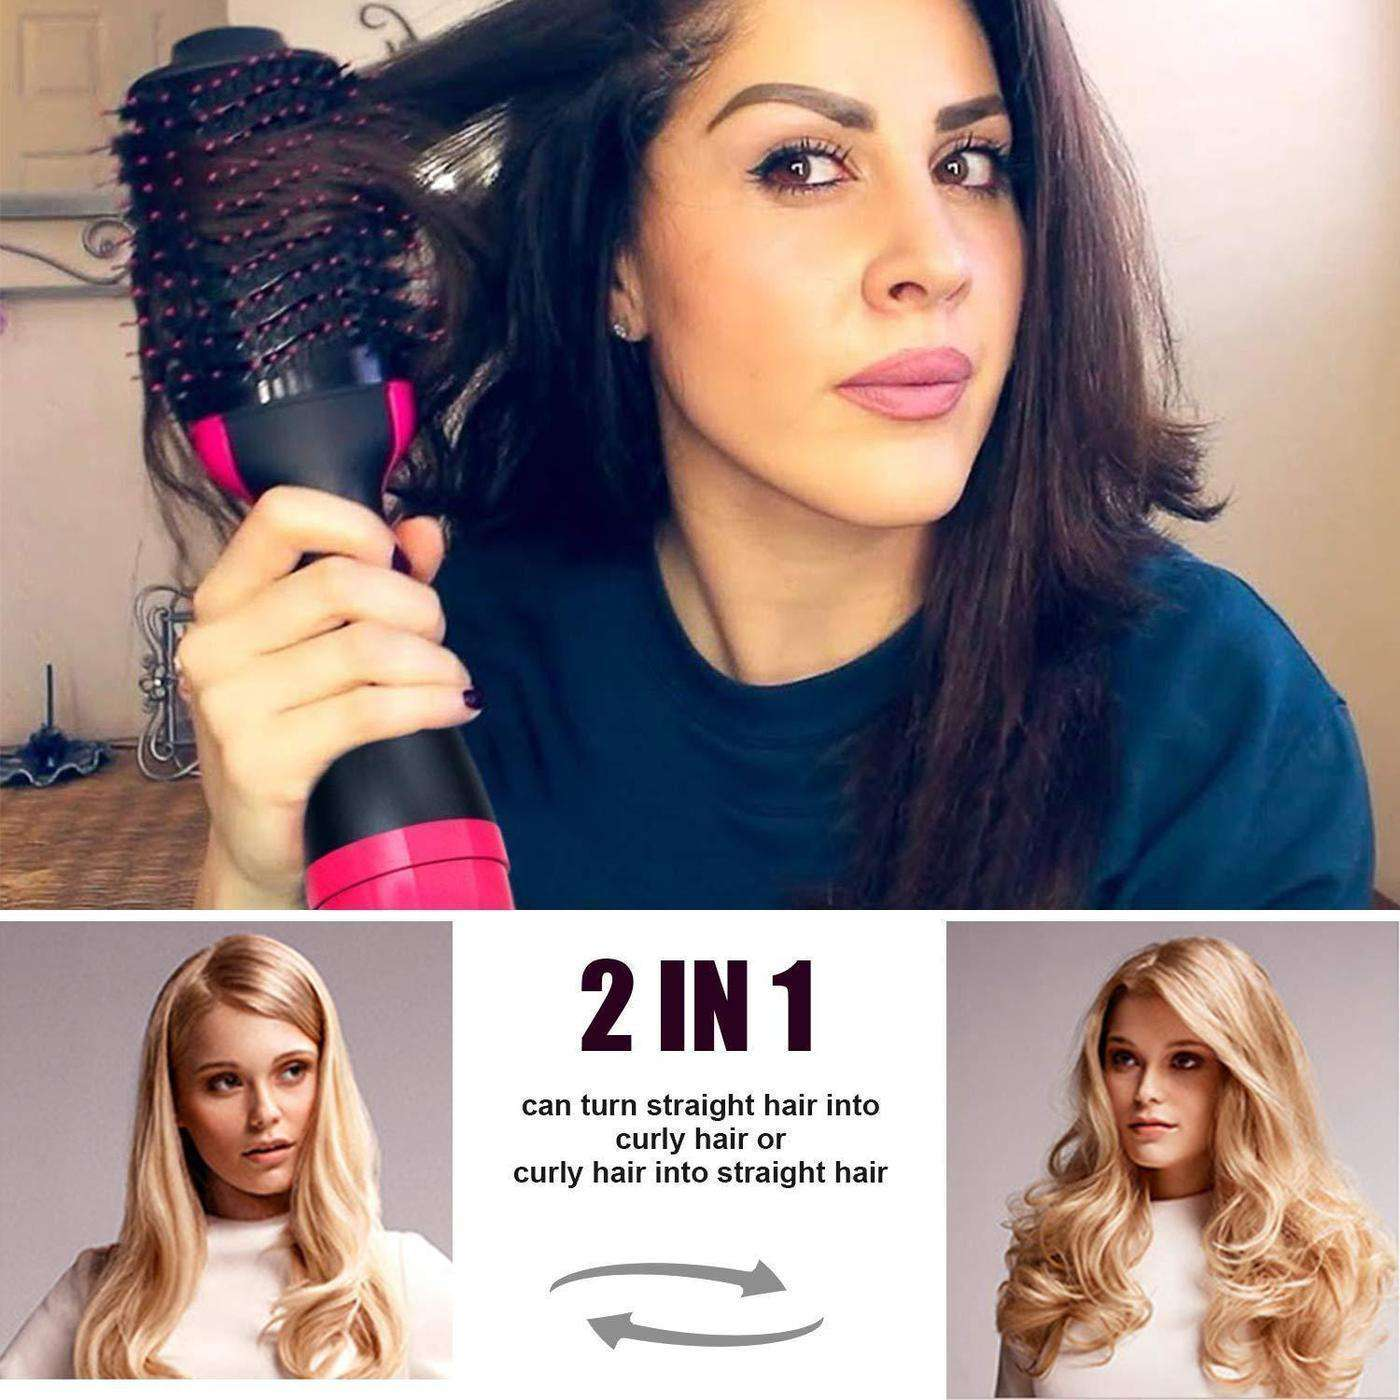 Blowout Brush - (3 in 1 Volumizer & Dryer & Styler) - Discounts You May Like